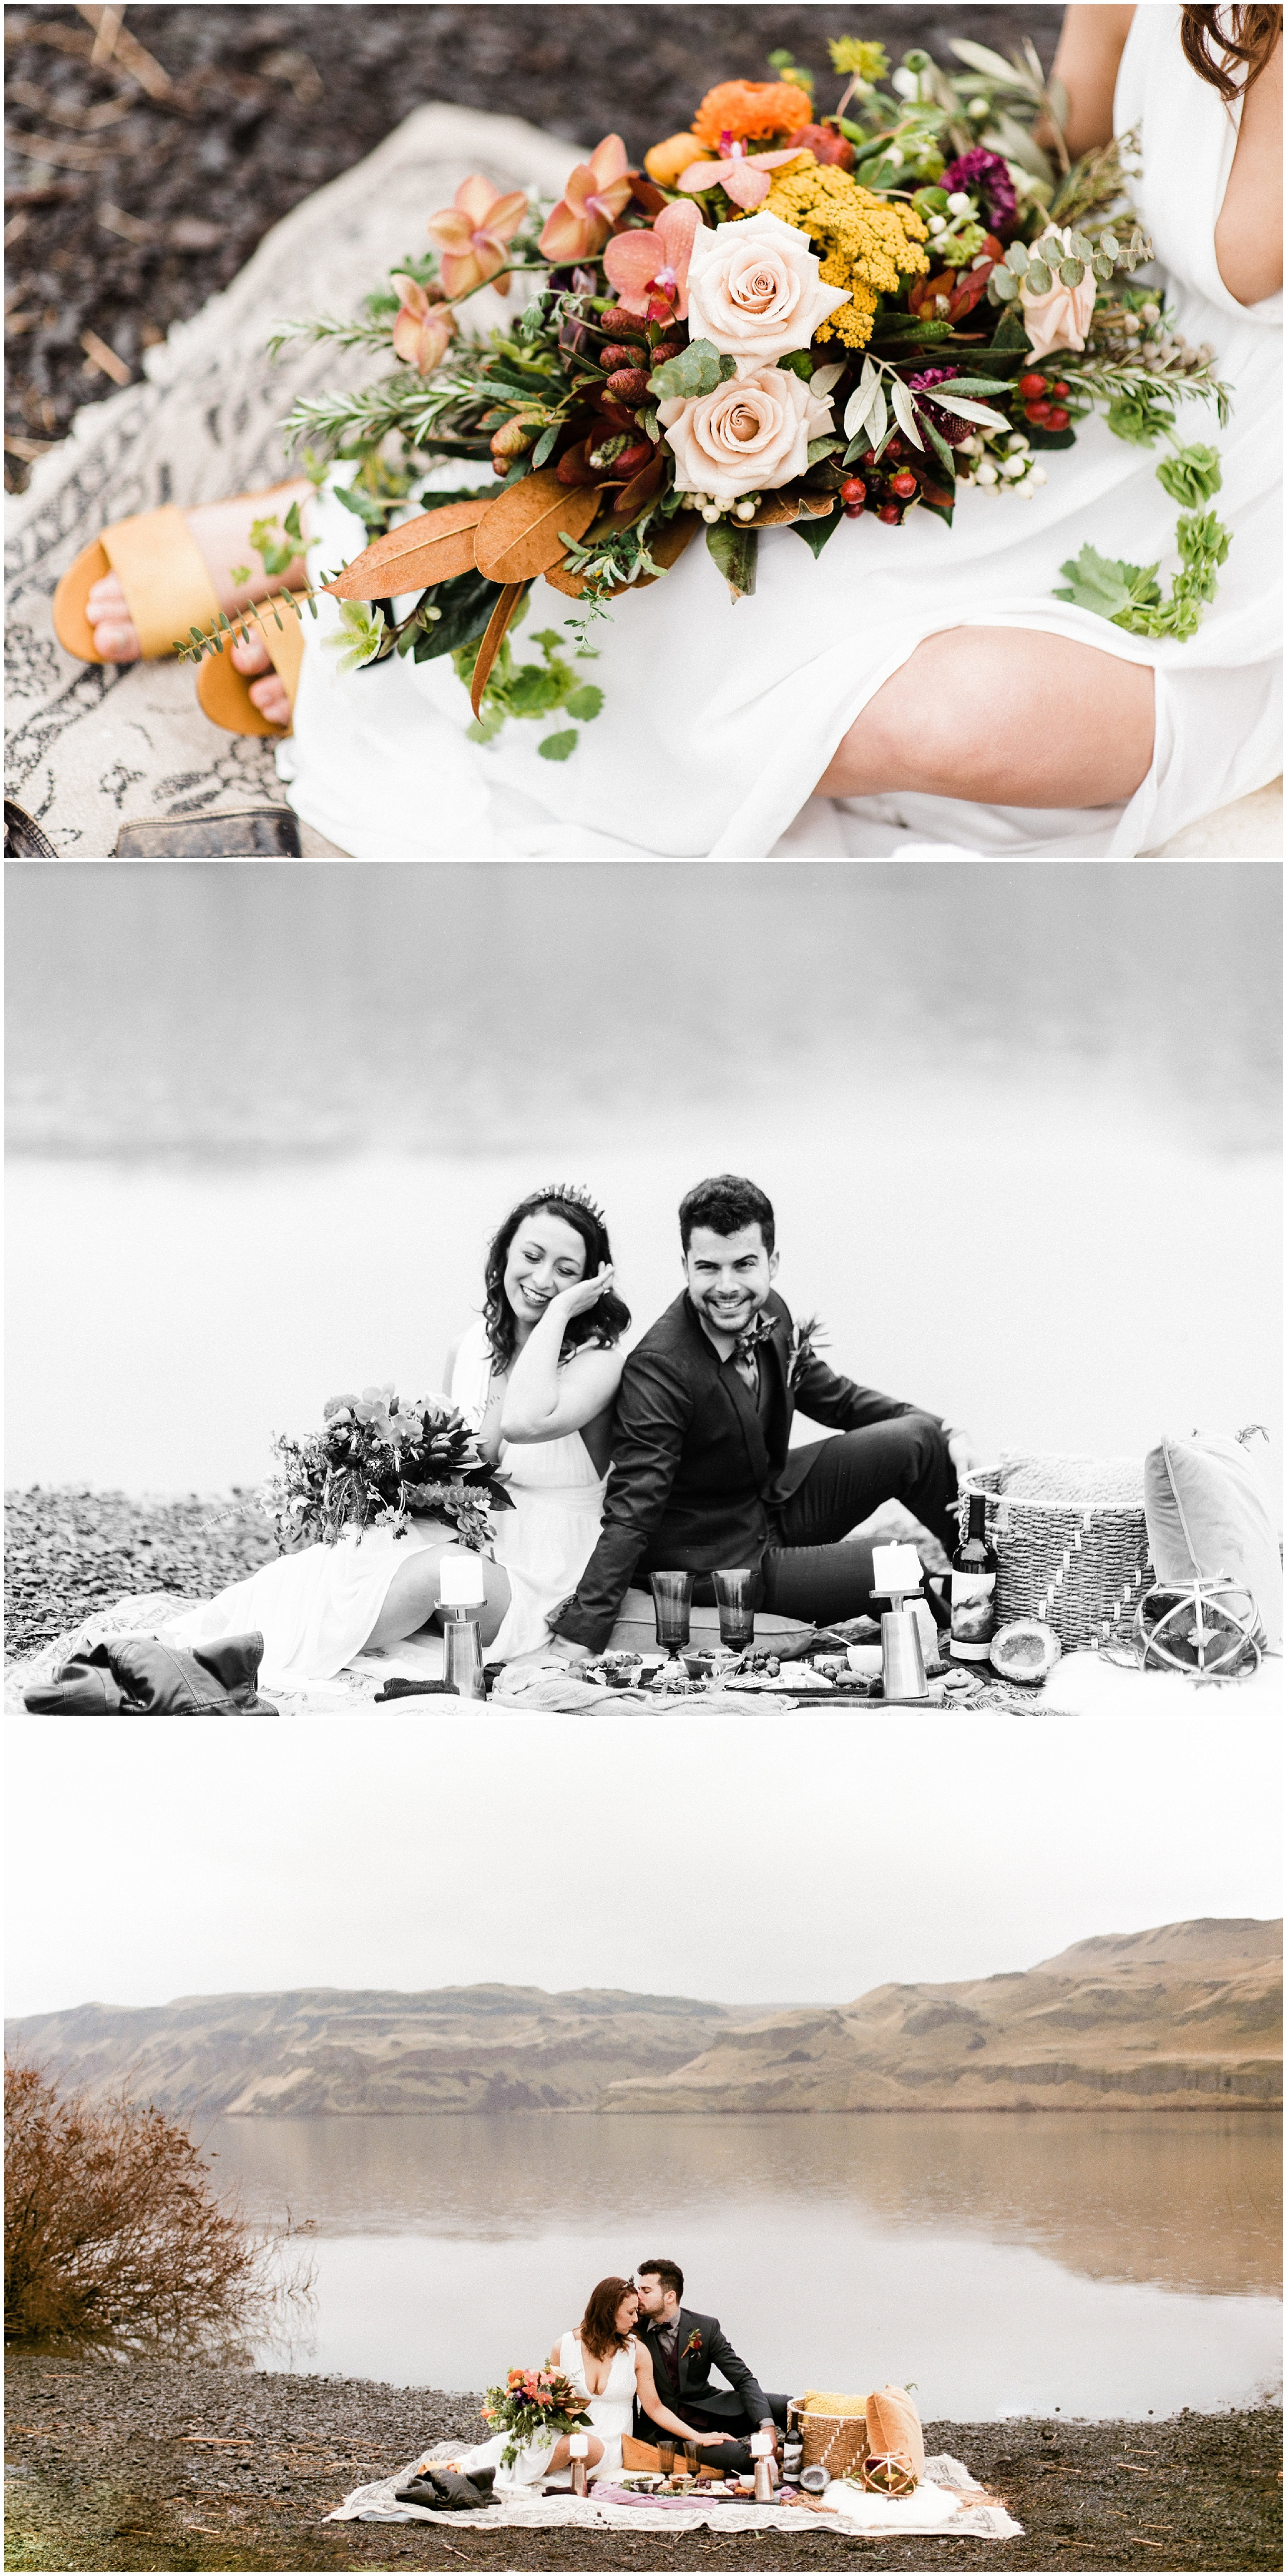 Triptych of a bride and groom picnicking in a styled elopement shoot in Lyons Ferry State Park by Forthright Photo